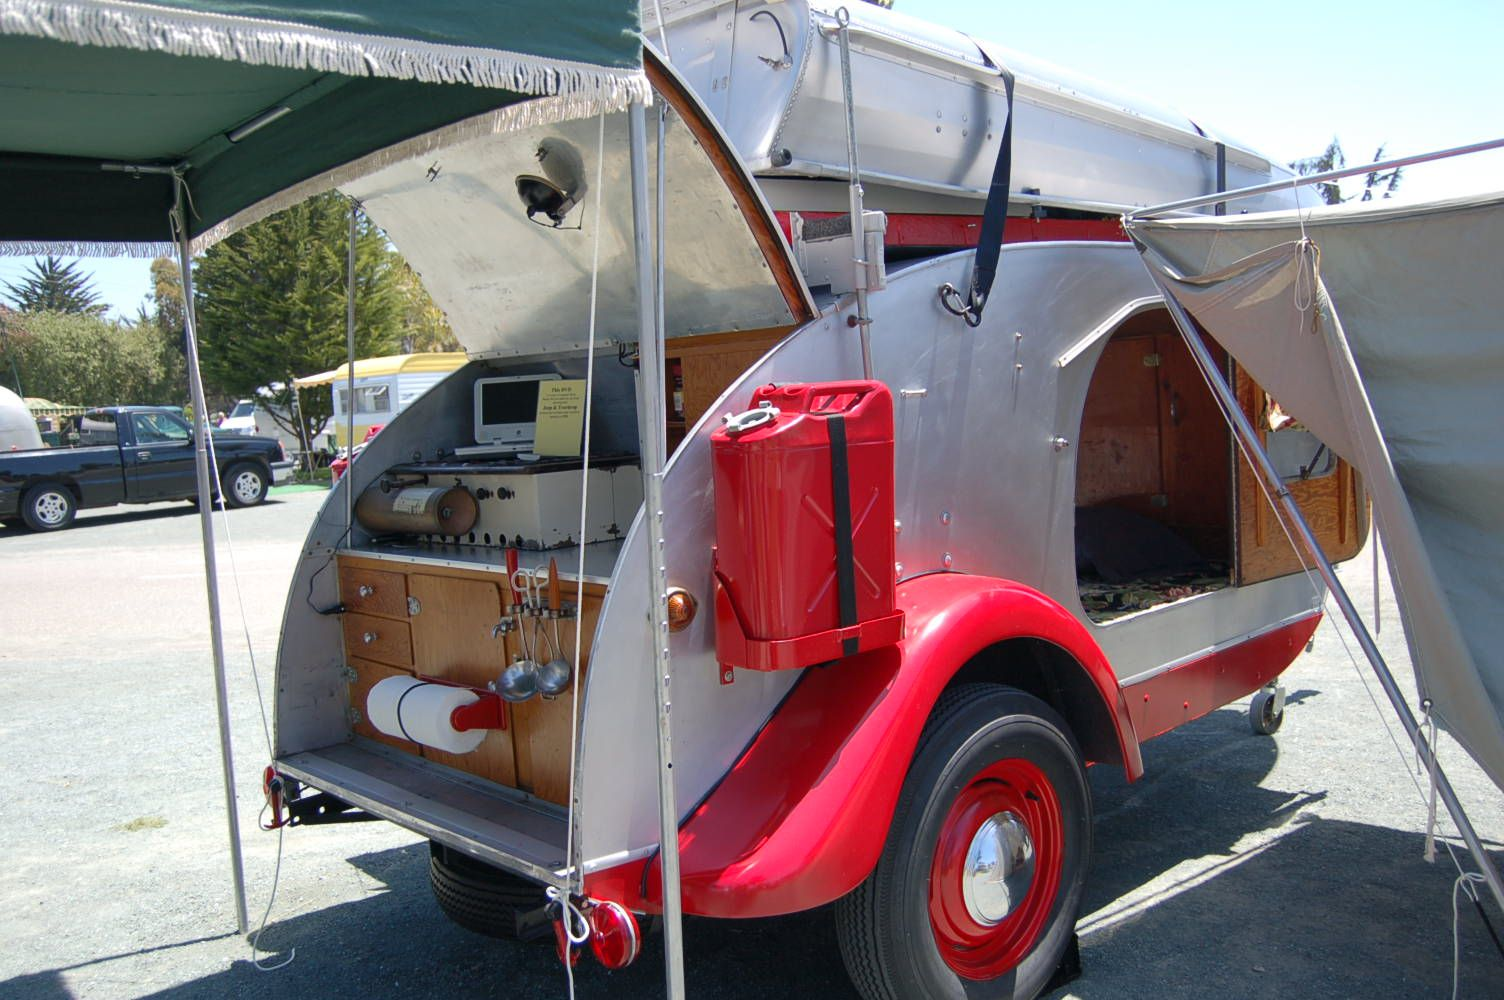 1947 Kenskill Teardrop Trailer With Retro Red Fenders